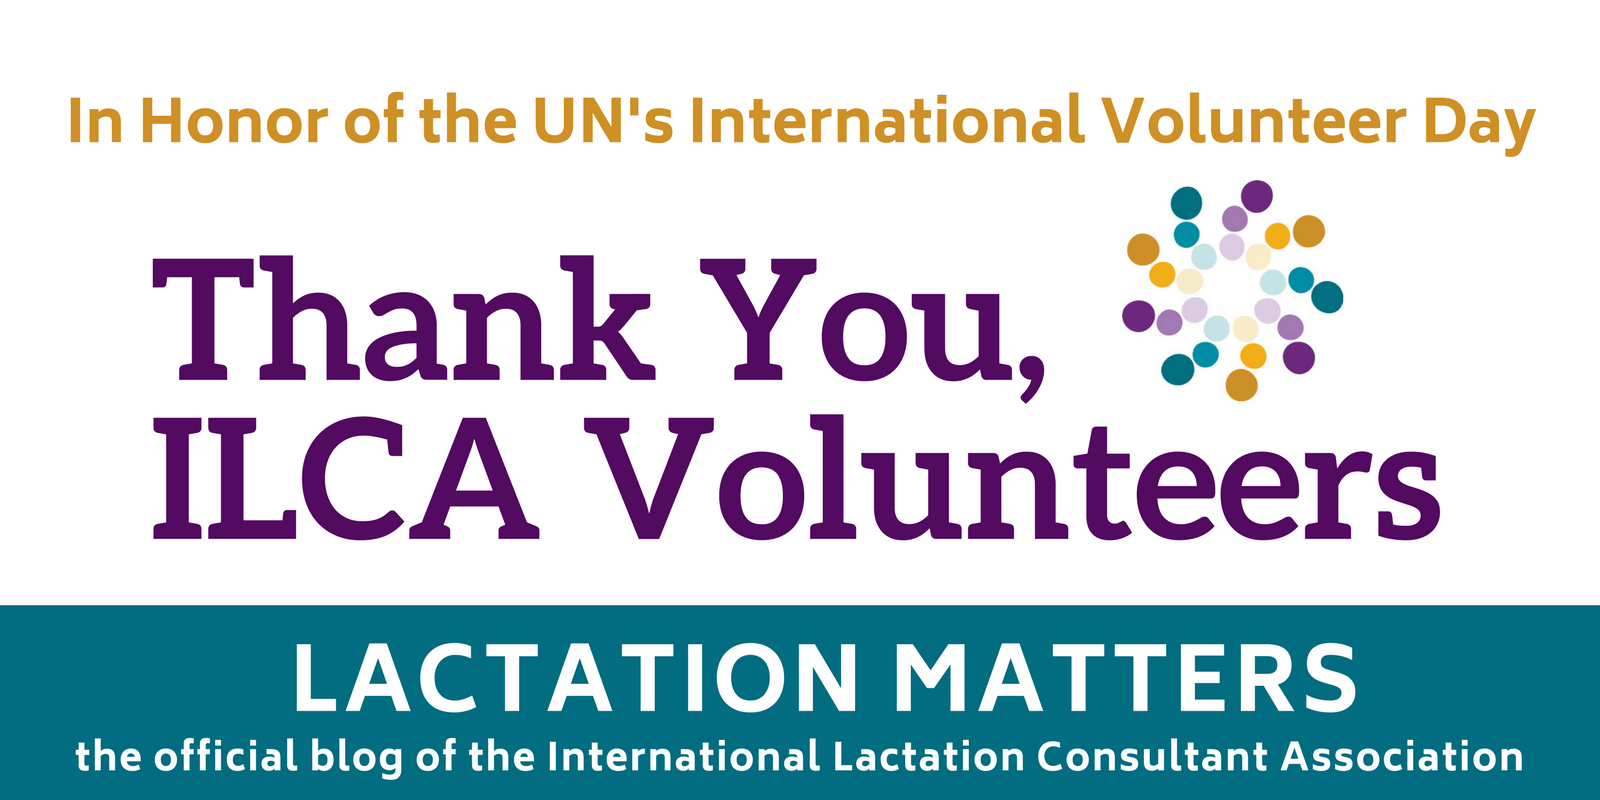 Thank you ilca volunteers lactation matters at the international lactation consultant association ilca we are deeply appreciative of our volunteers the countless hours energy 1betcityfo Choice Image